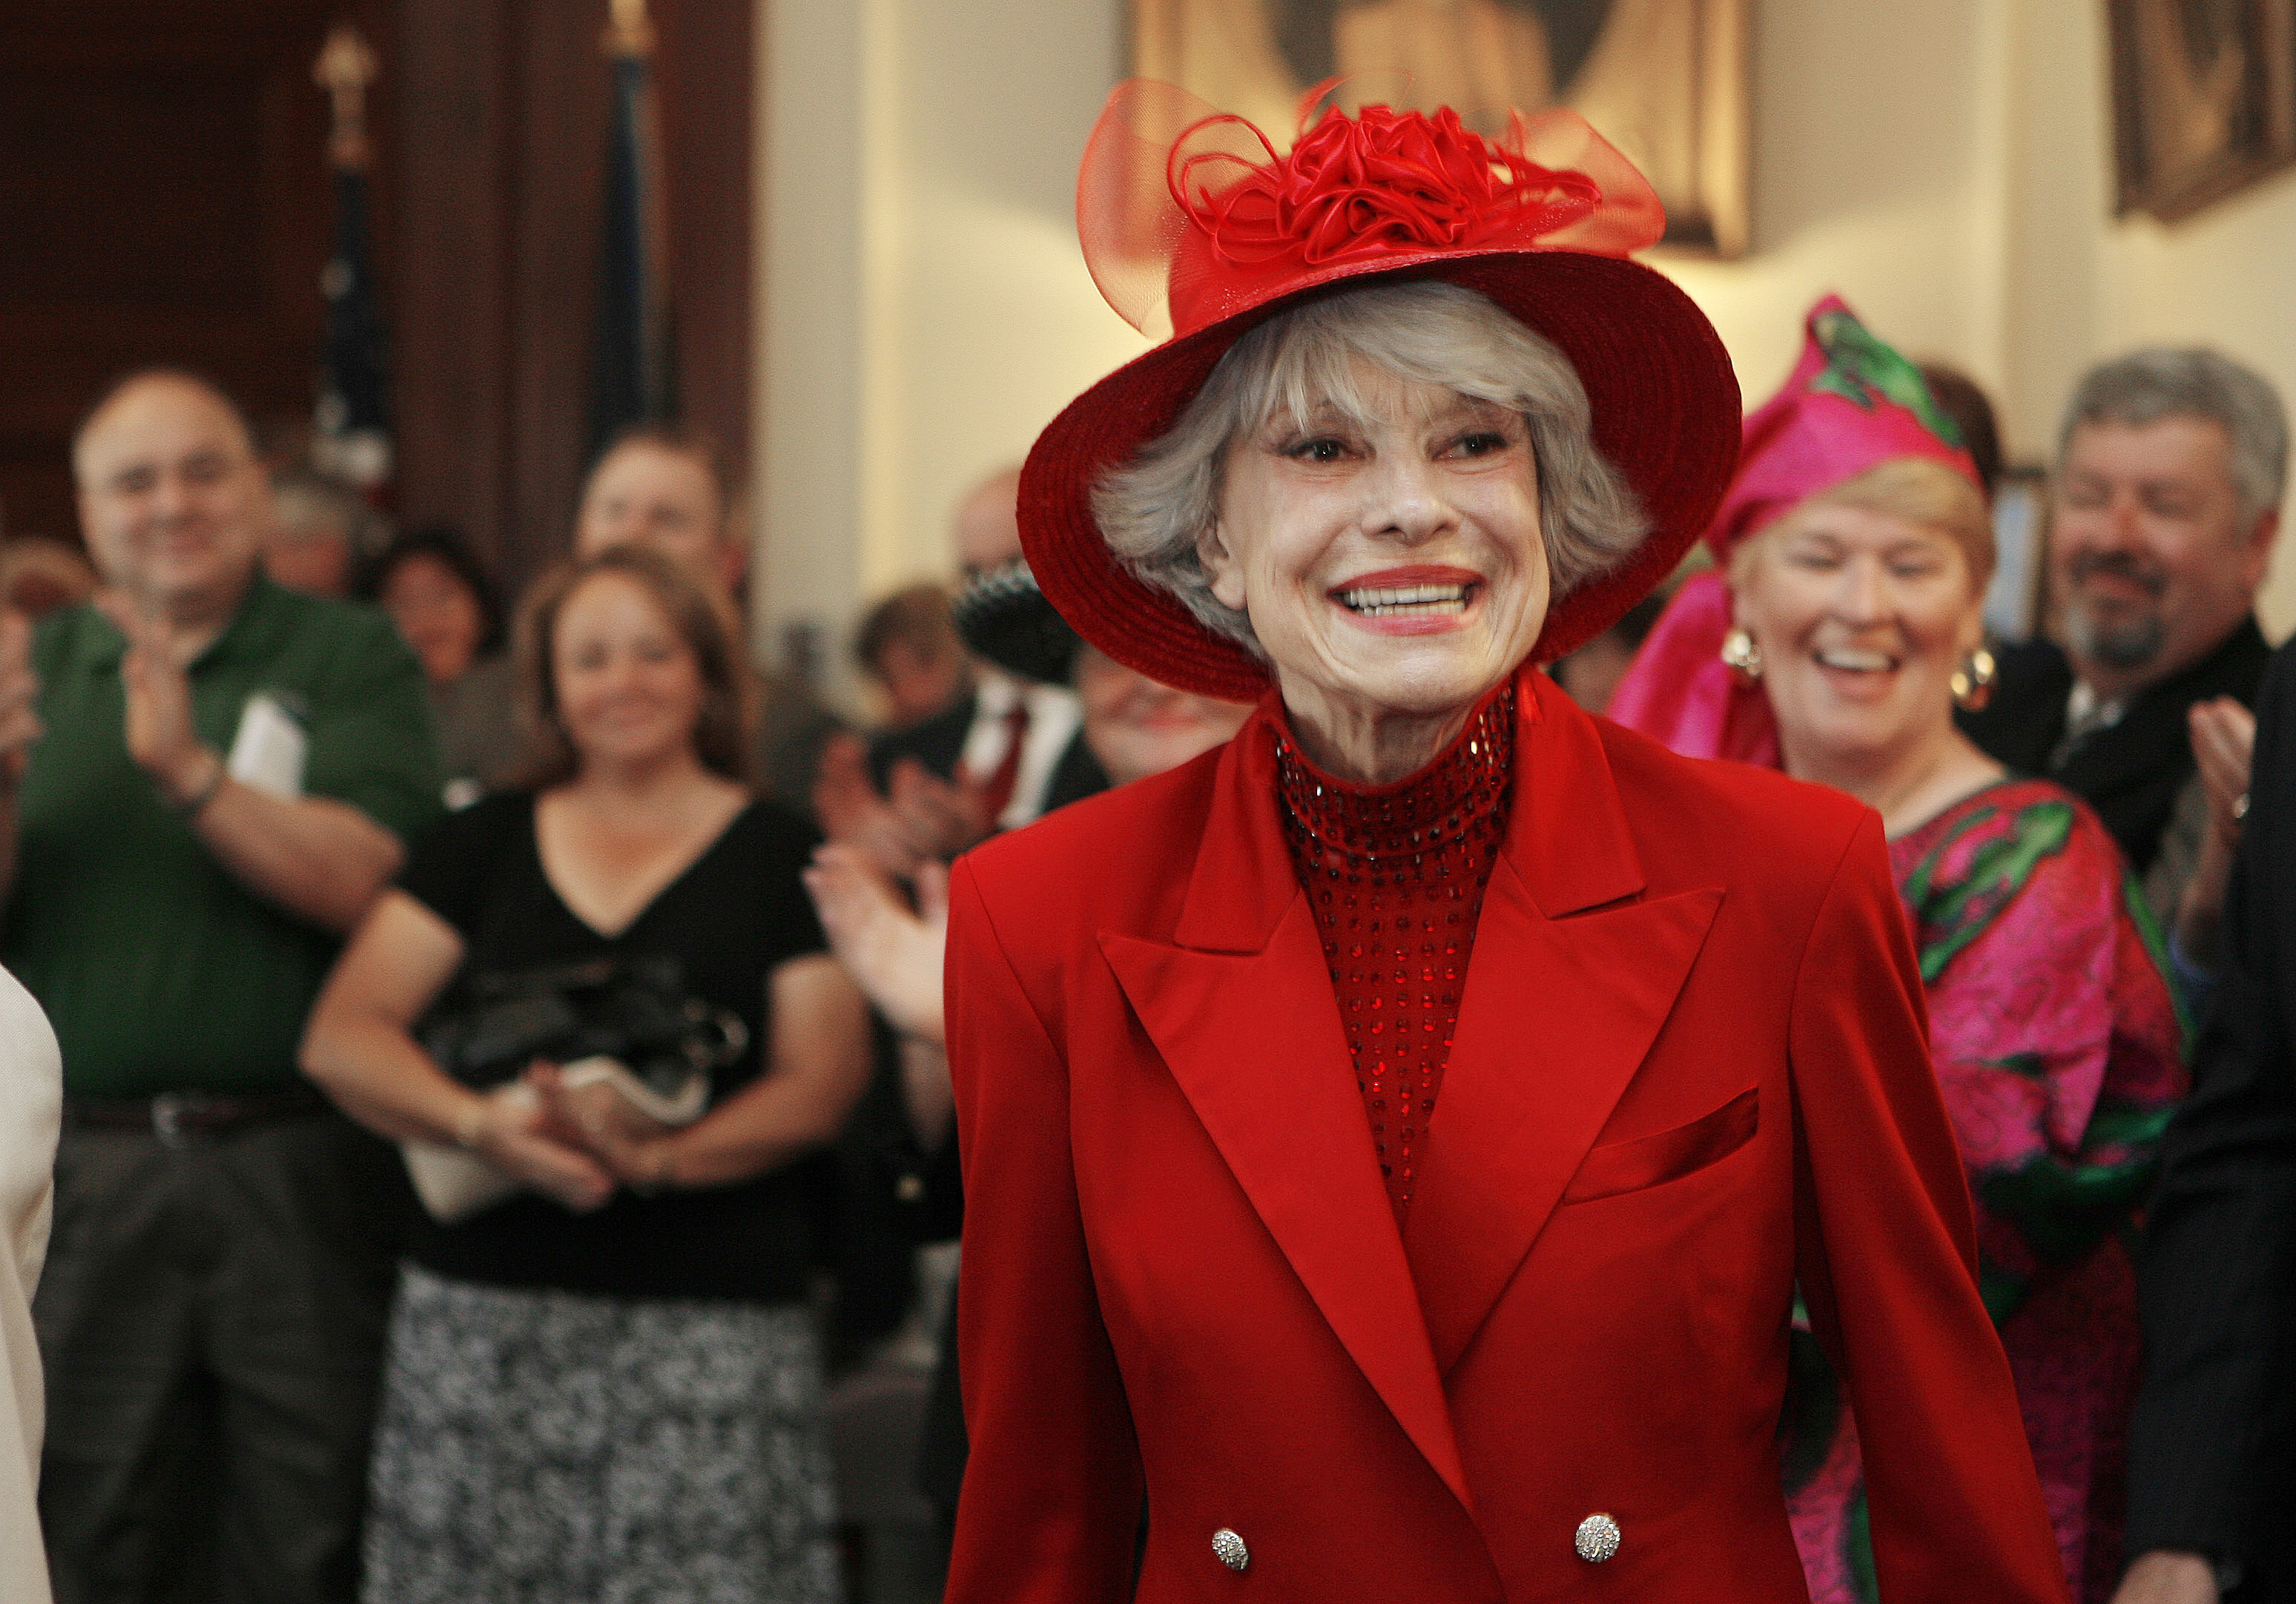 FILE - This June 27, 2007 file photo shows singer and actress Carol Channing in Concord, N.H.  Channing, whose career spanned decades on Broadway and on television has died at age 97. Publicist B. Harlan Boll says Channing died of natural causes early Tuesday, Jan. 15, 2019 in Rancho Mirage, Calif. (AP Photo/Jim Cole, File)